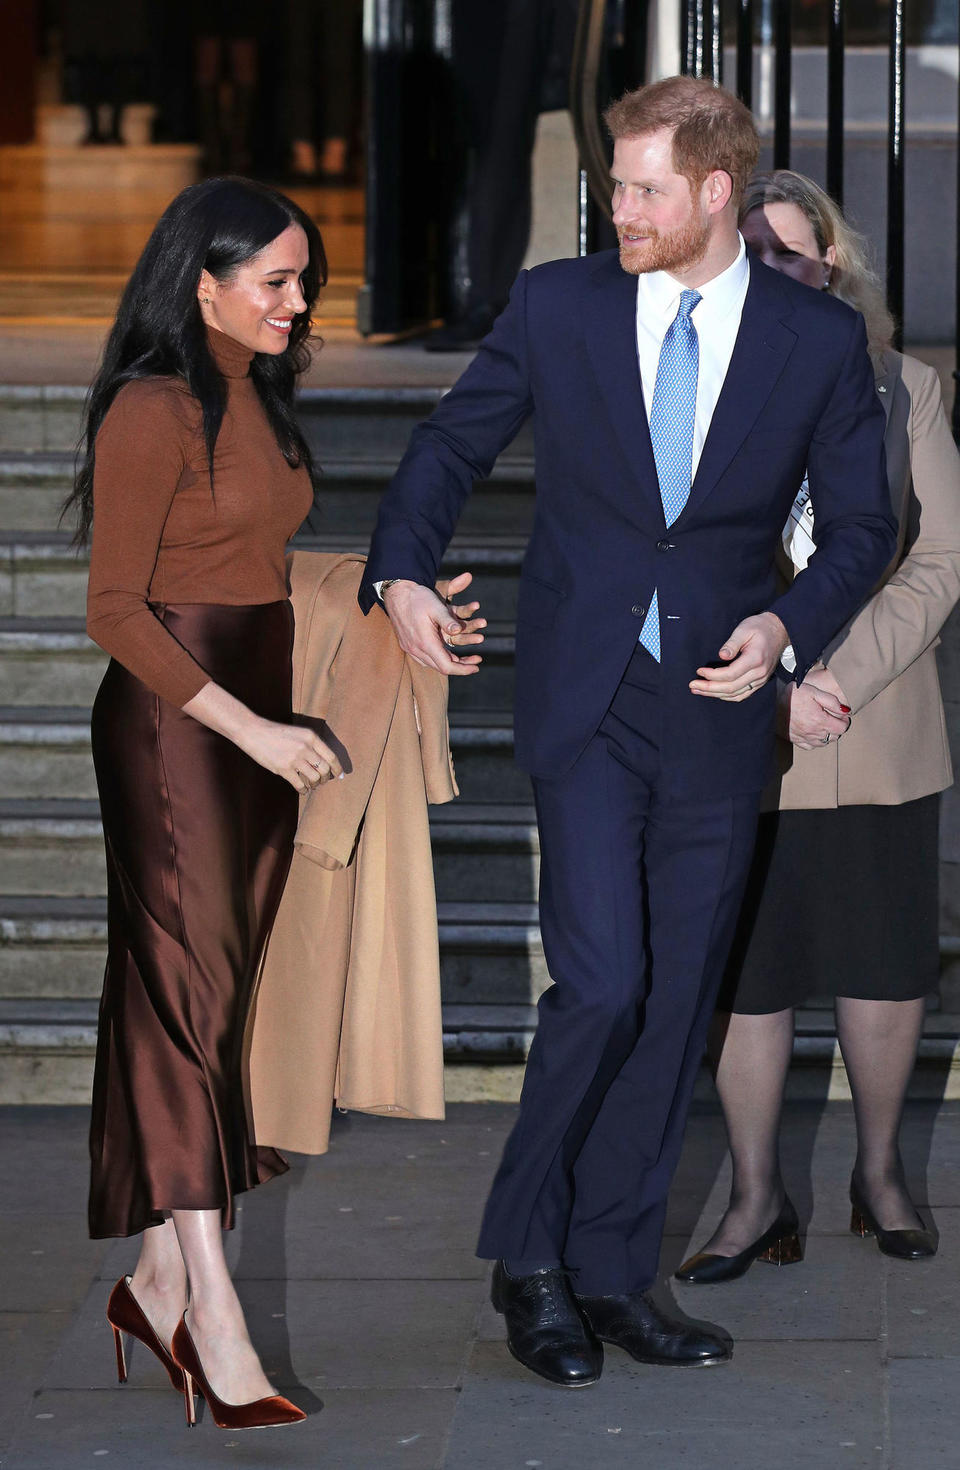 Meghan Markle and Prince Harry look super relaxed after their 6 week break